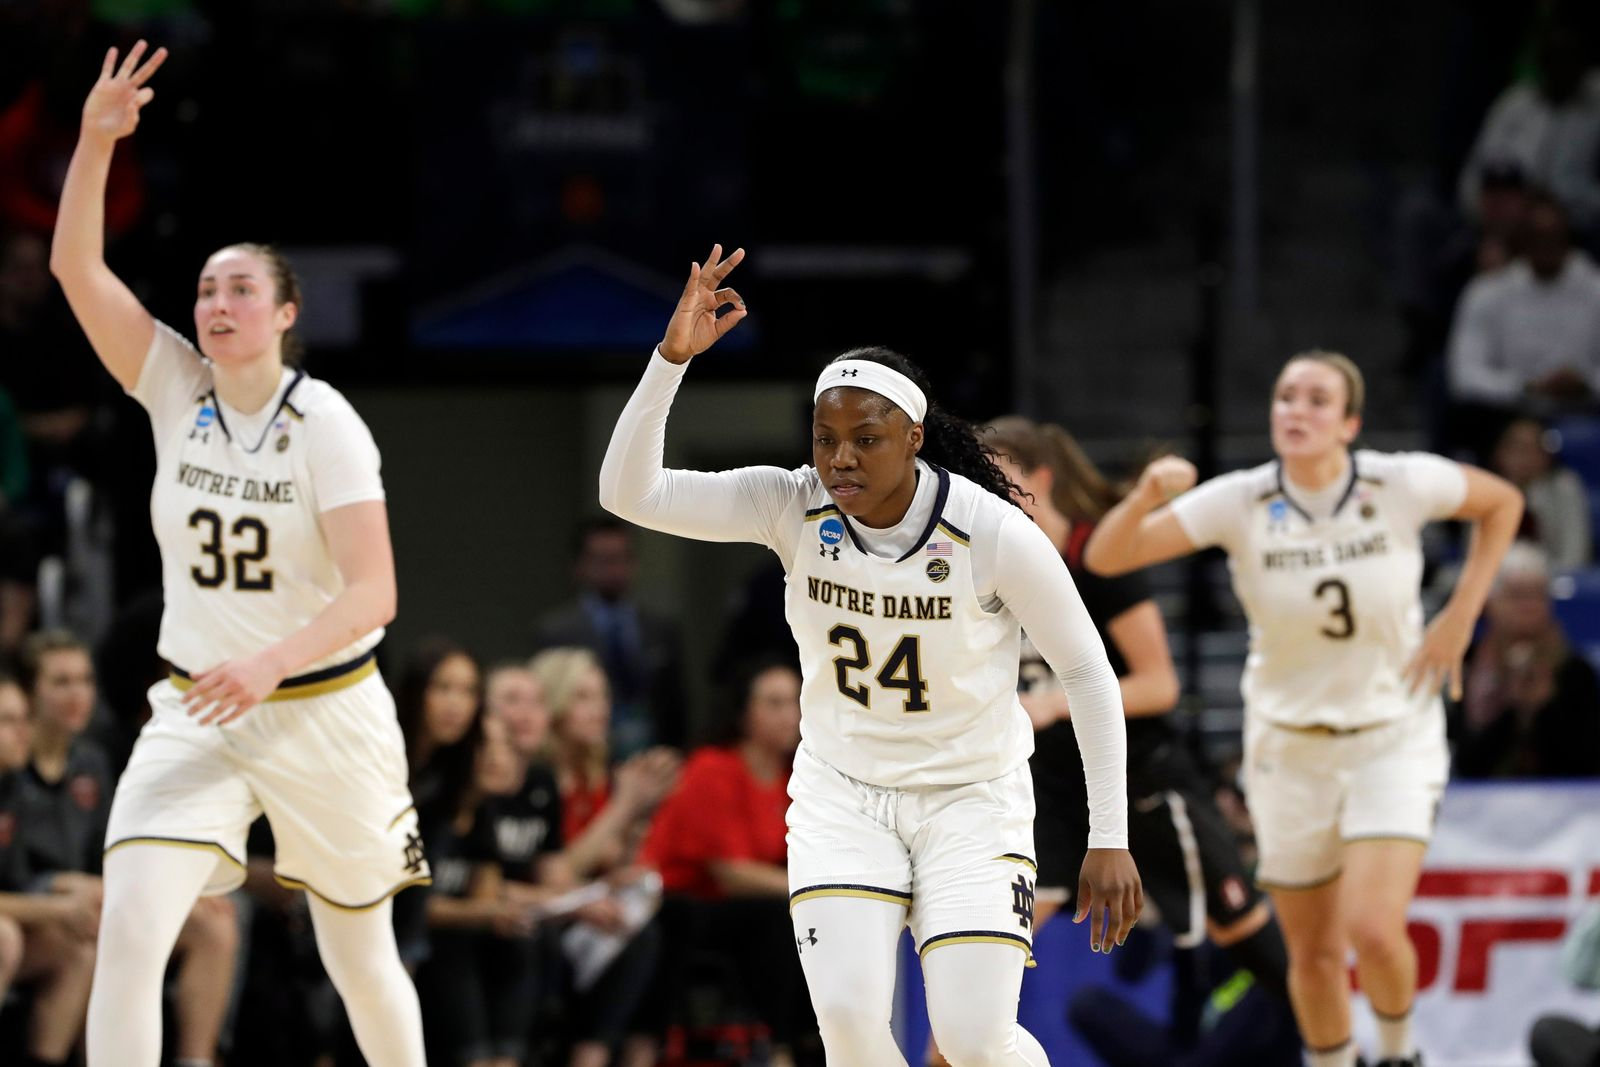 Notre Dame's Arike Ogunbowale (24) reacts after shooting a 3-point shot during the first half of a regional championship game against Stanford in the NCAA women's college basketball tournament, Monday, April 1, 2019, in Chicago. (AP Photo/Nam Y. Huh)